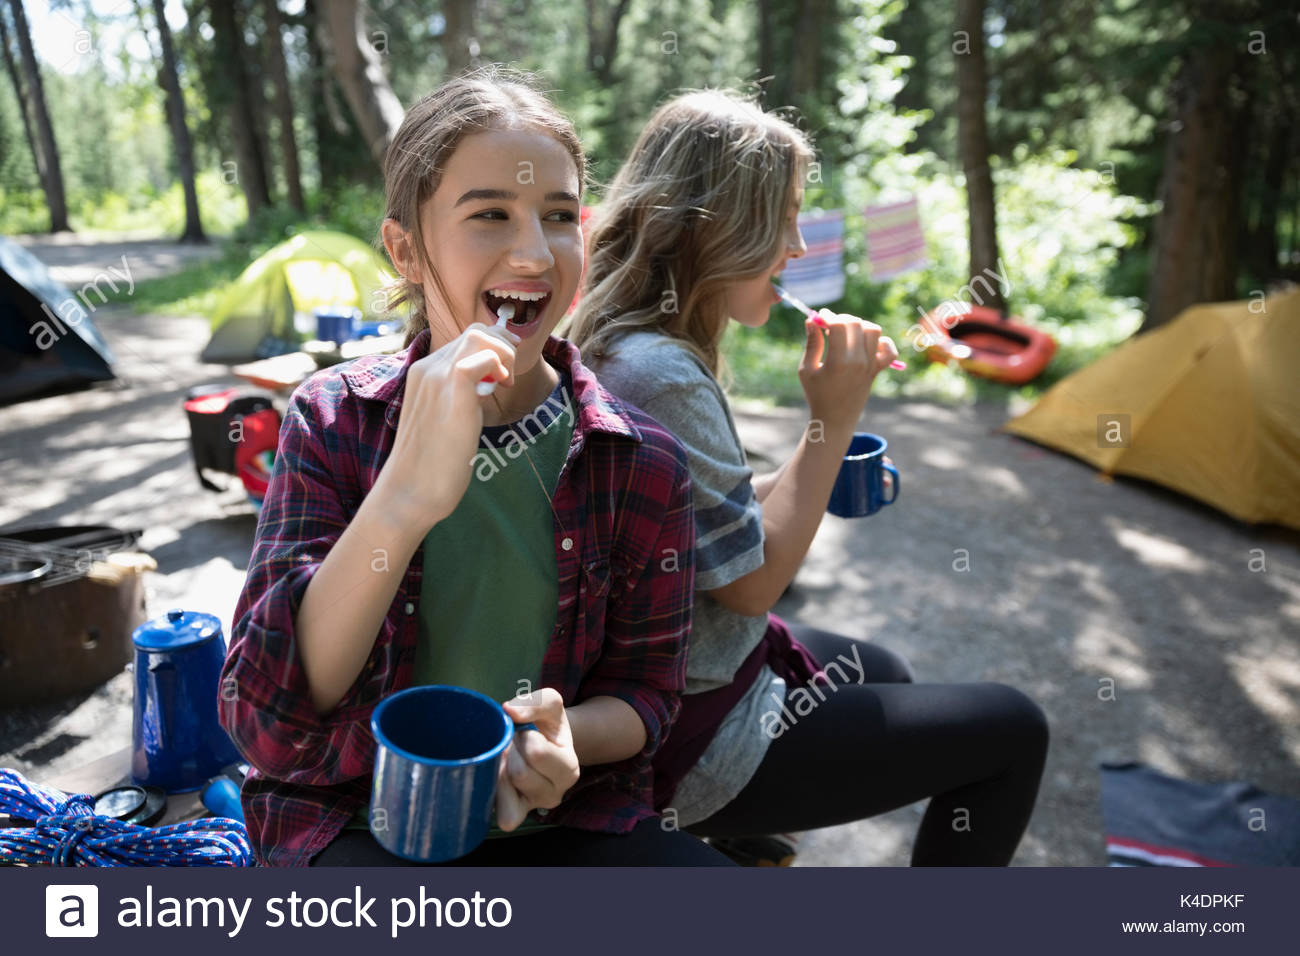 Smiling teenage girl friends brushing teeth with toothbrushes and mugs at outdoor school campsite - Stock Image